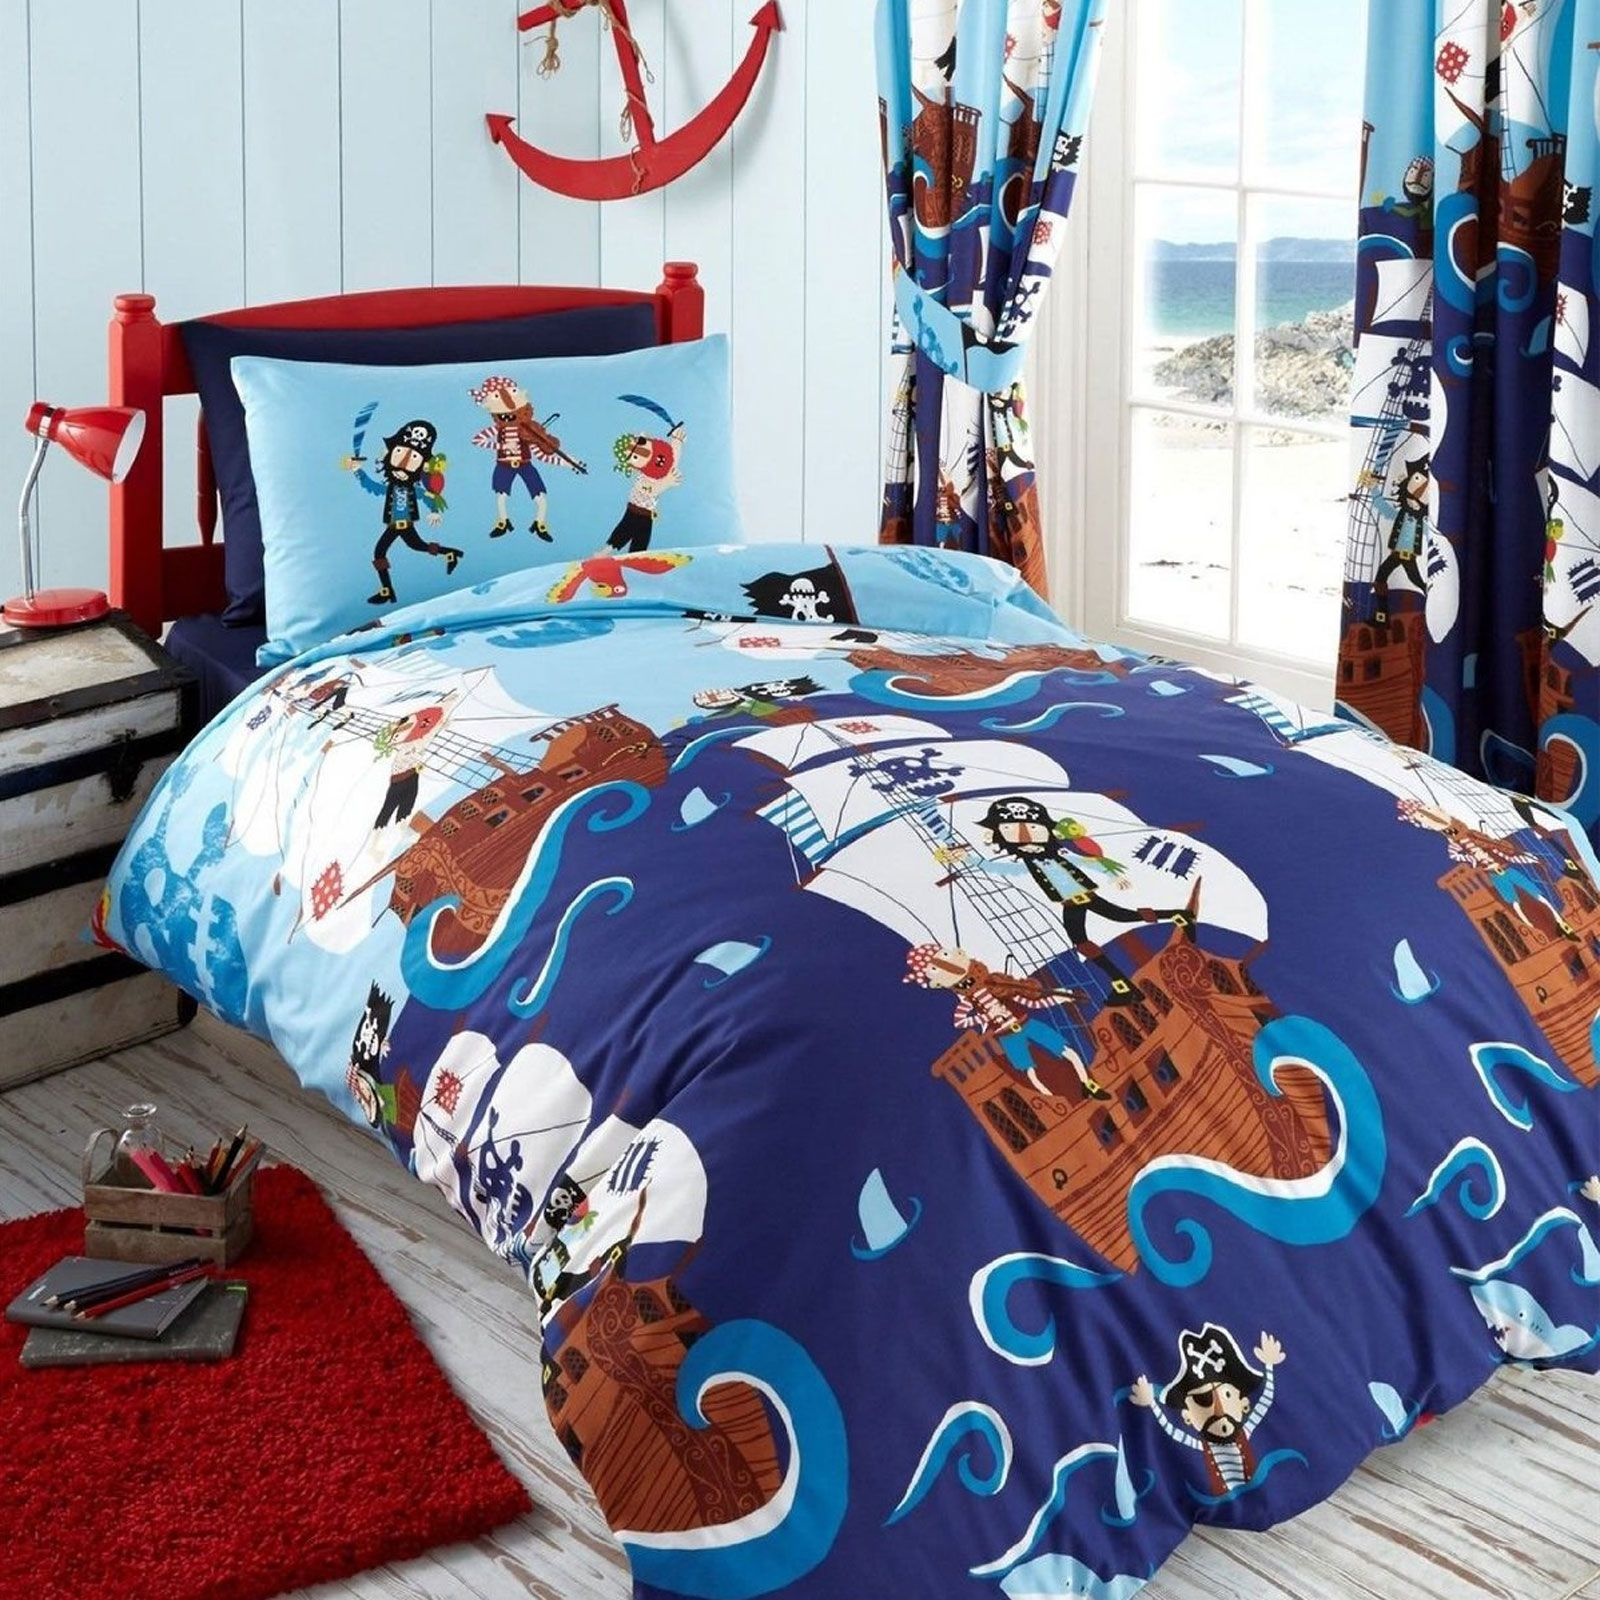 GARCONS-SET-HOUSSE-DE-COUETTE-SIMPLE-ARMEE-DINOSAURES-MINEURS-PIRATES-FOOTBALL